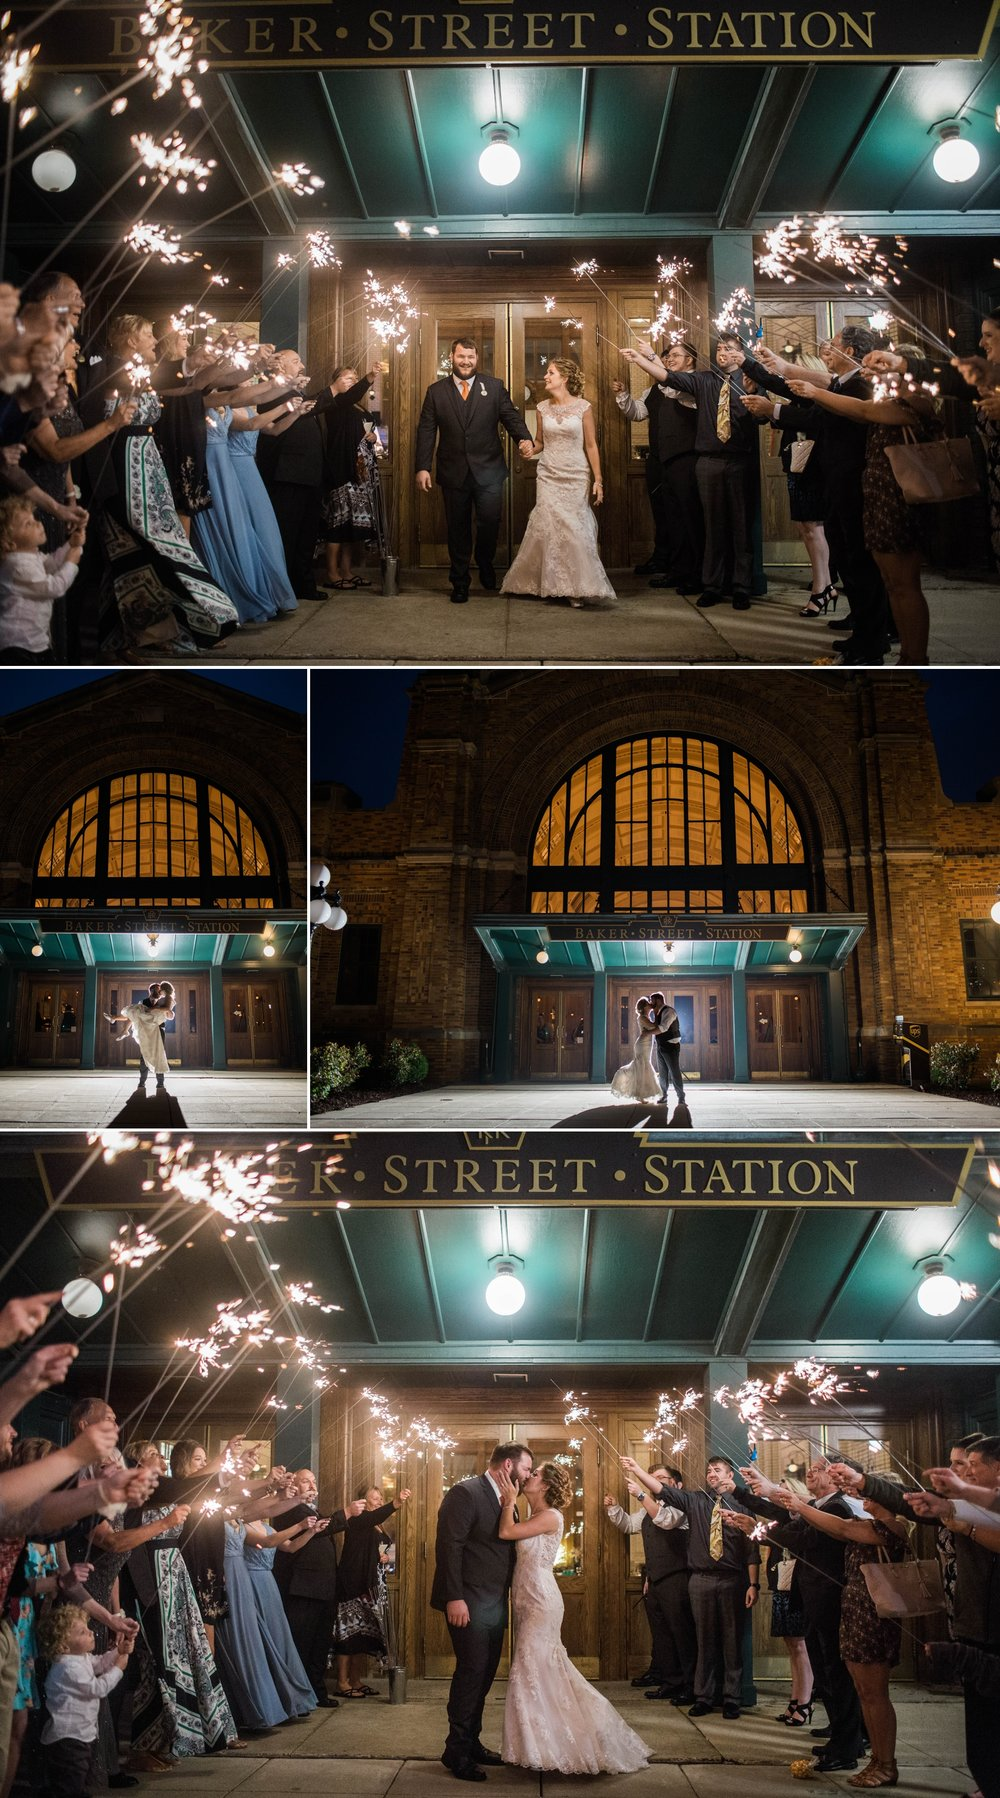 wedding - wedding day - reception - sparkler exit - train station - bride - groom